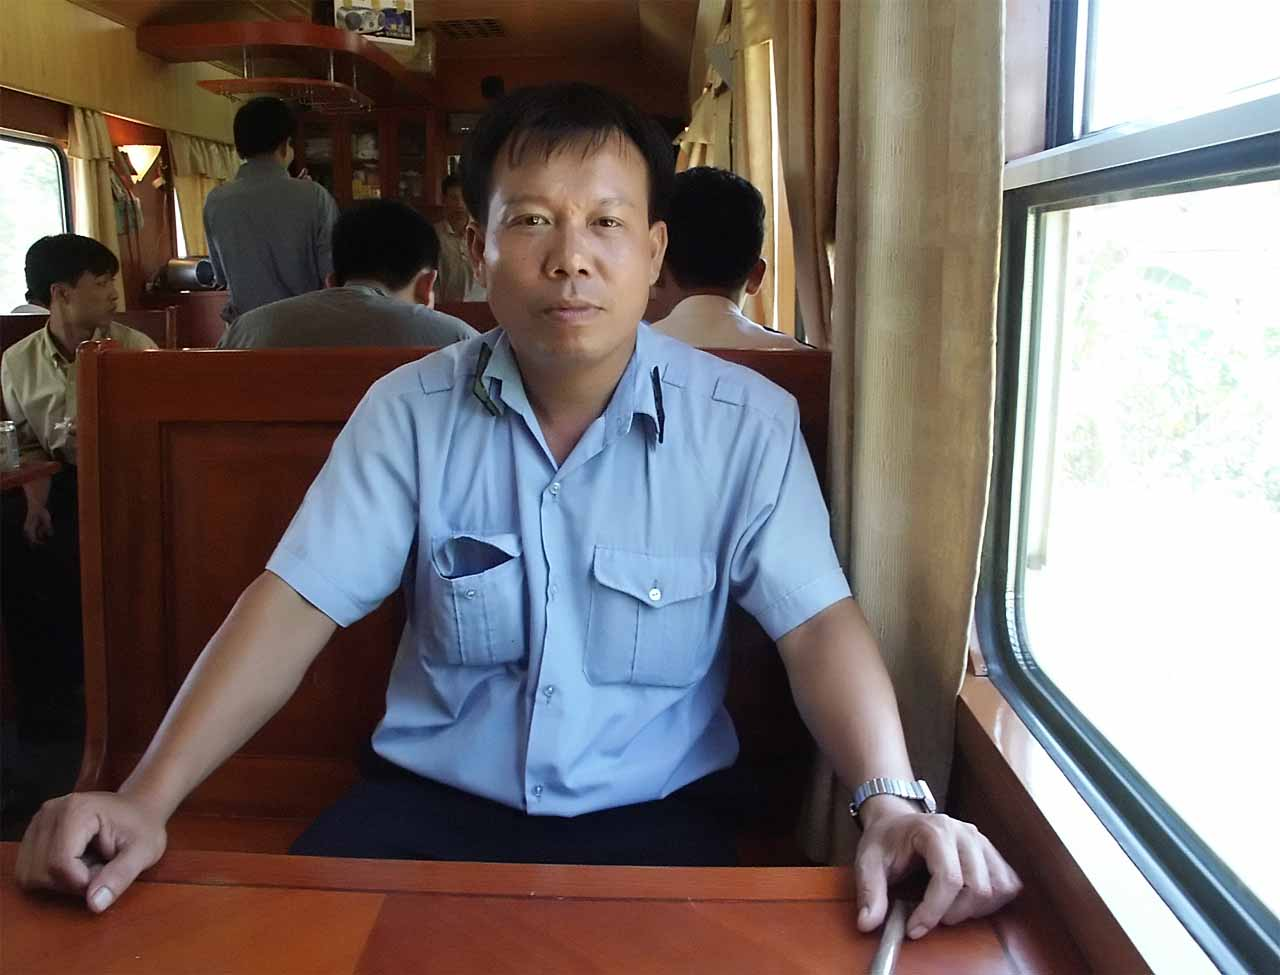 The engineer of the train from Hanoi to Hoi An, Vietnam